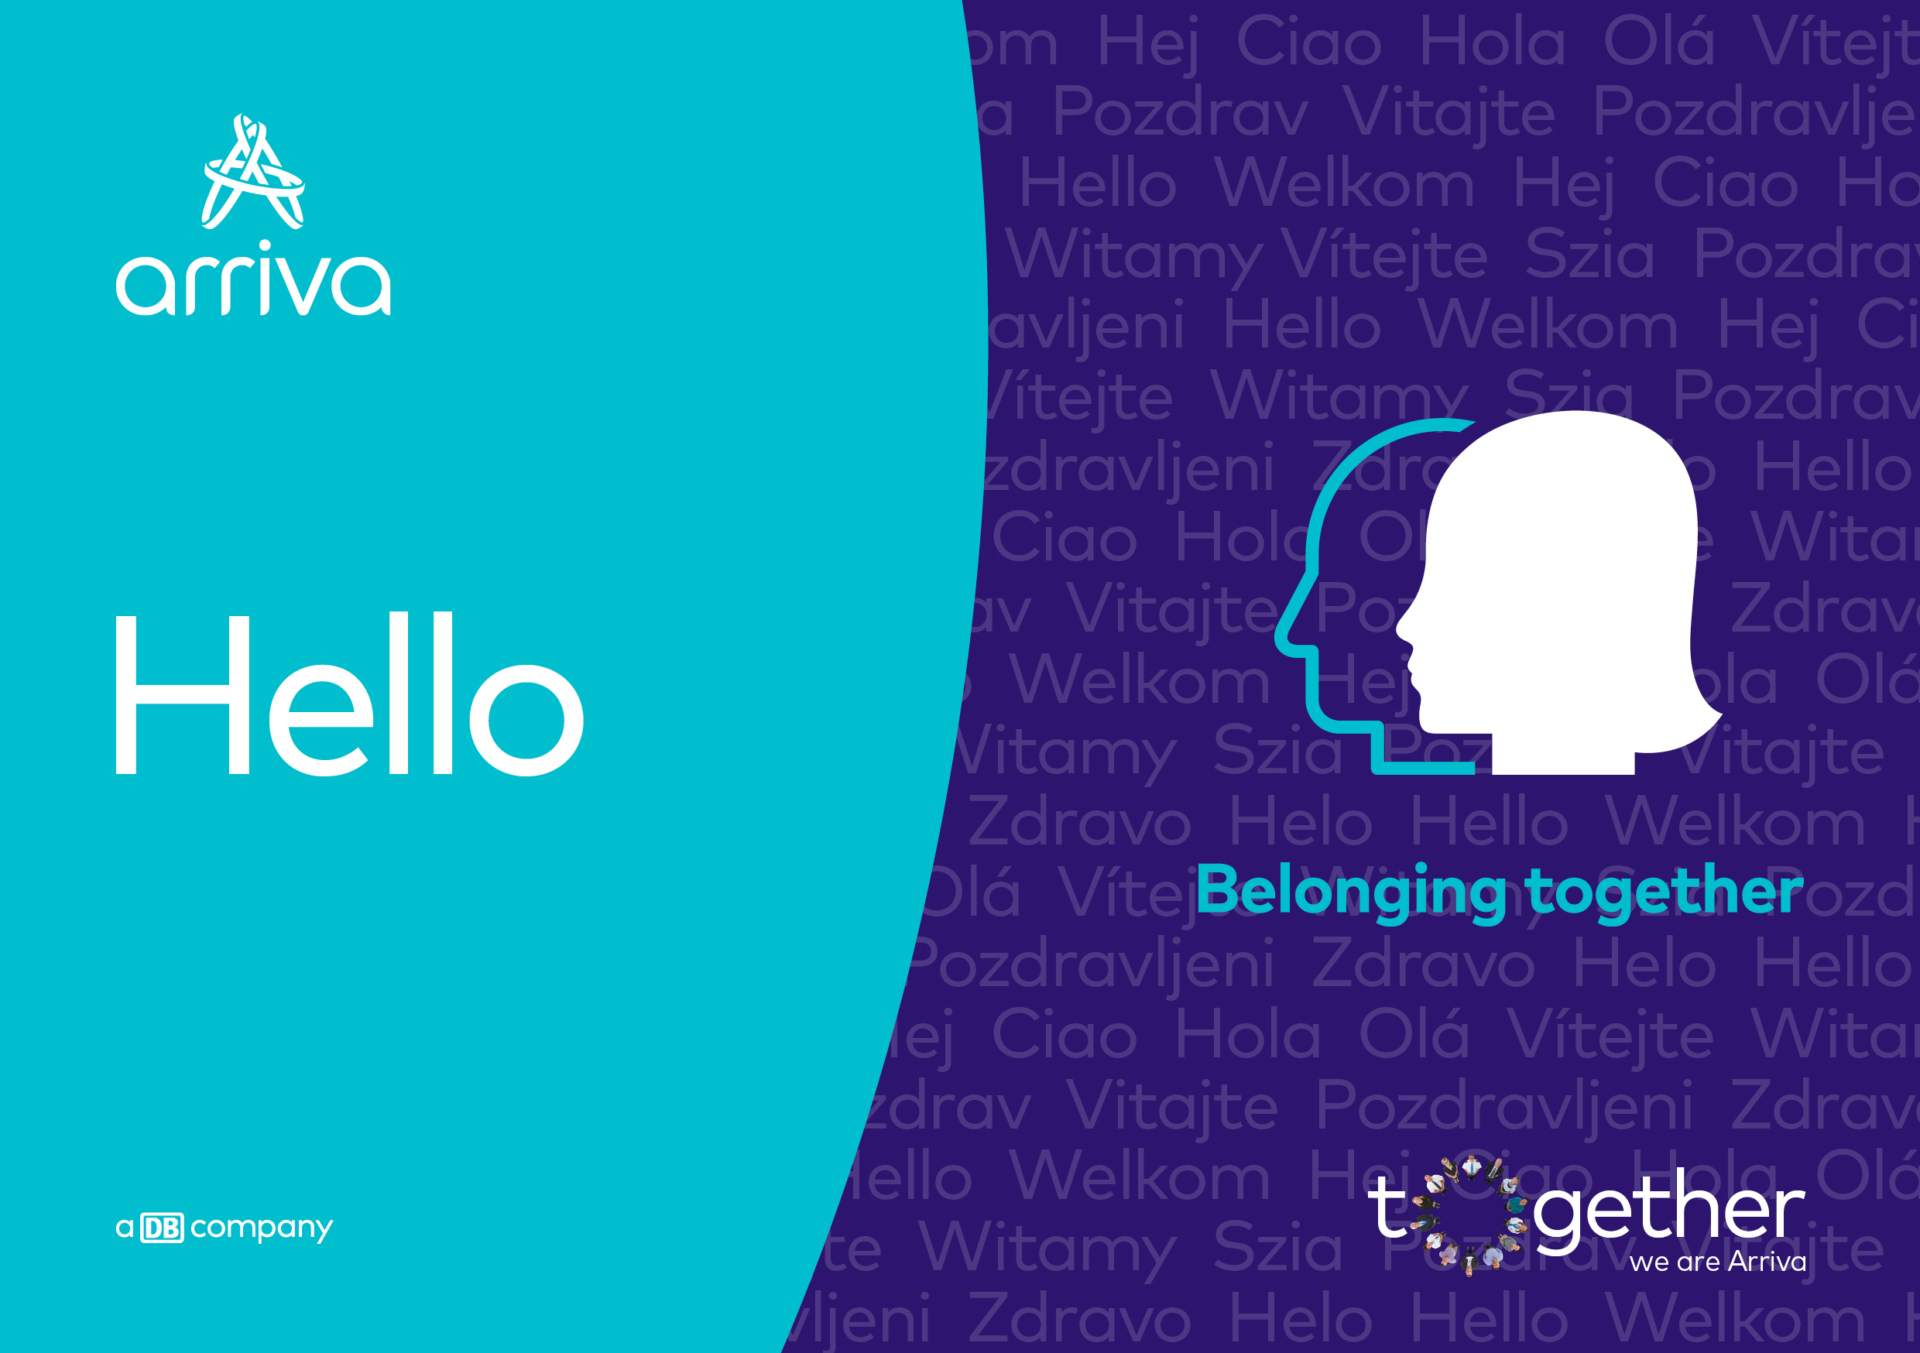 Our employer brand Together we are Arriva describes Arriva as an employer. While we have many autonomous businesses in 14 different countries, there are many ways in which we are connected and there is real strength, value and a competitive advantage to us operating together as a group.